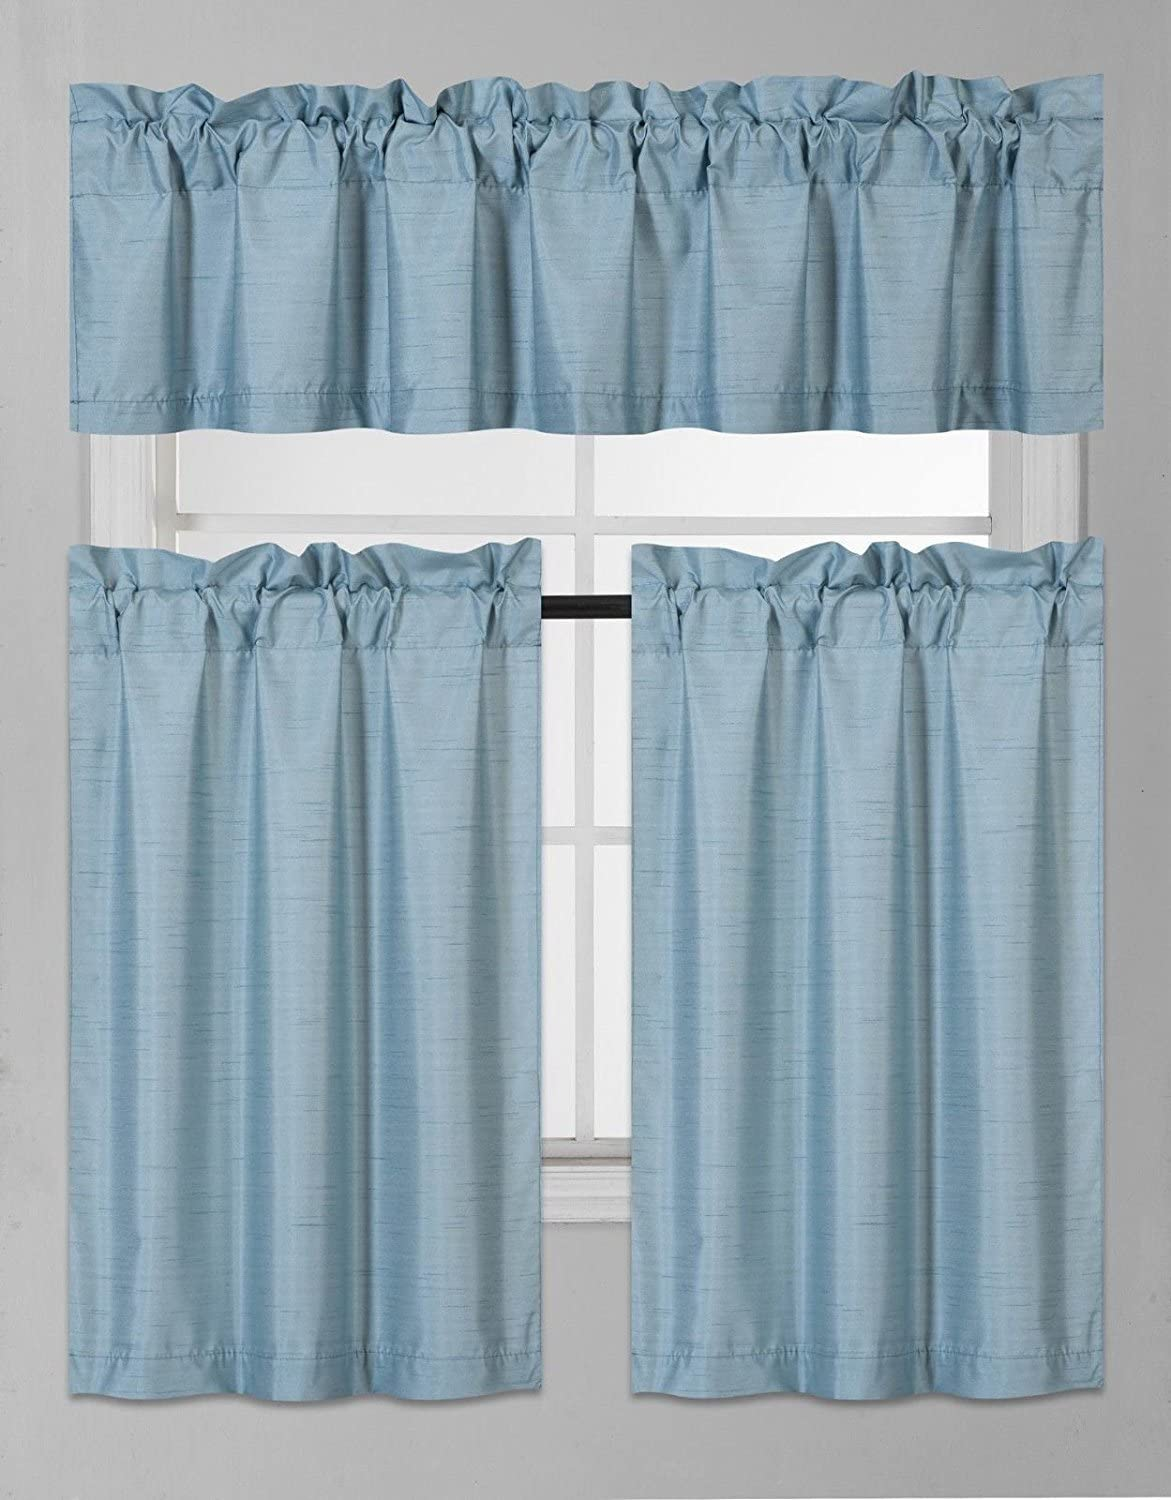 Elegant Home Collection 3 Piece Solid Color Faux Silk Blackout Kitchen Window Curtain Set with Tiers and Valance Solid Color Lined Thermal Blackout Drape Window Treatment Set #K3 (Teal Blue)